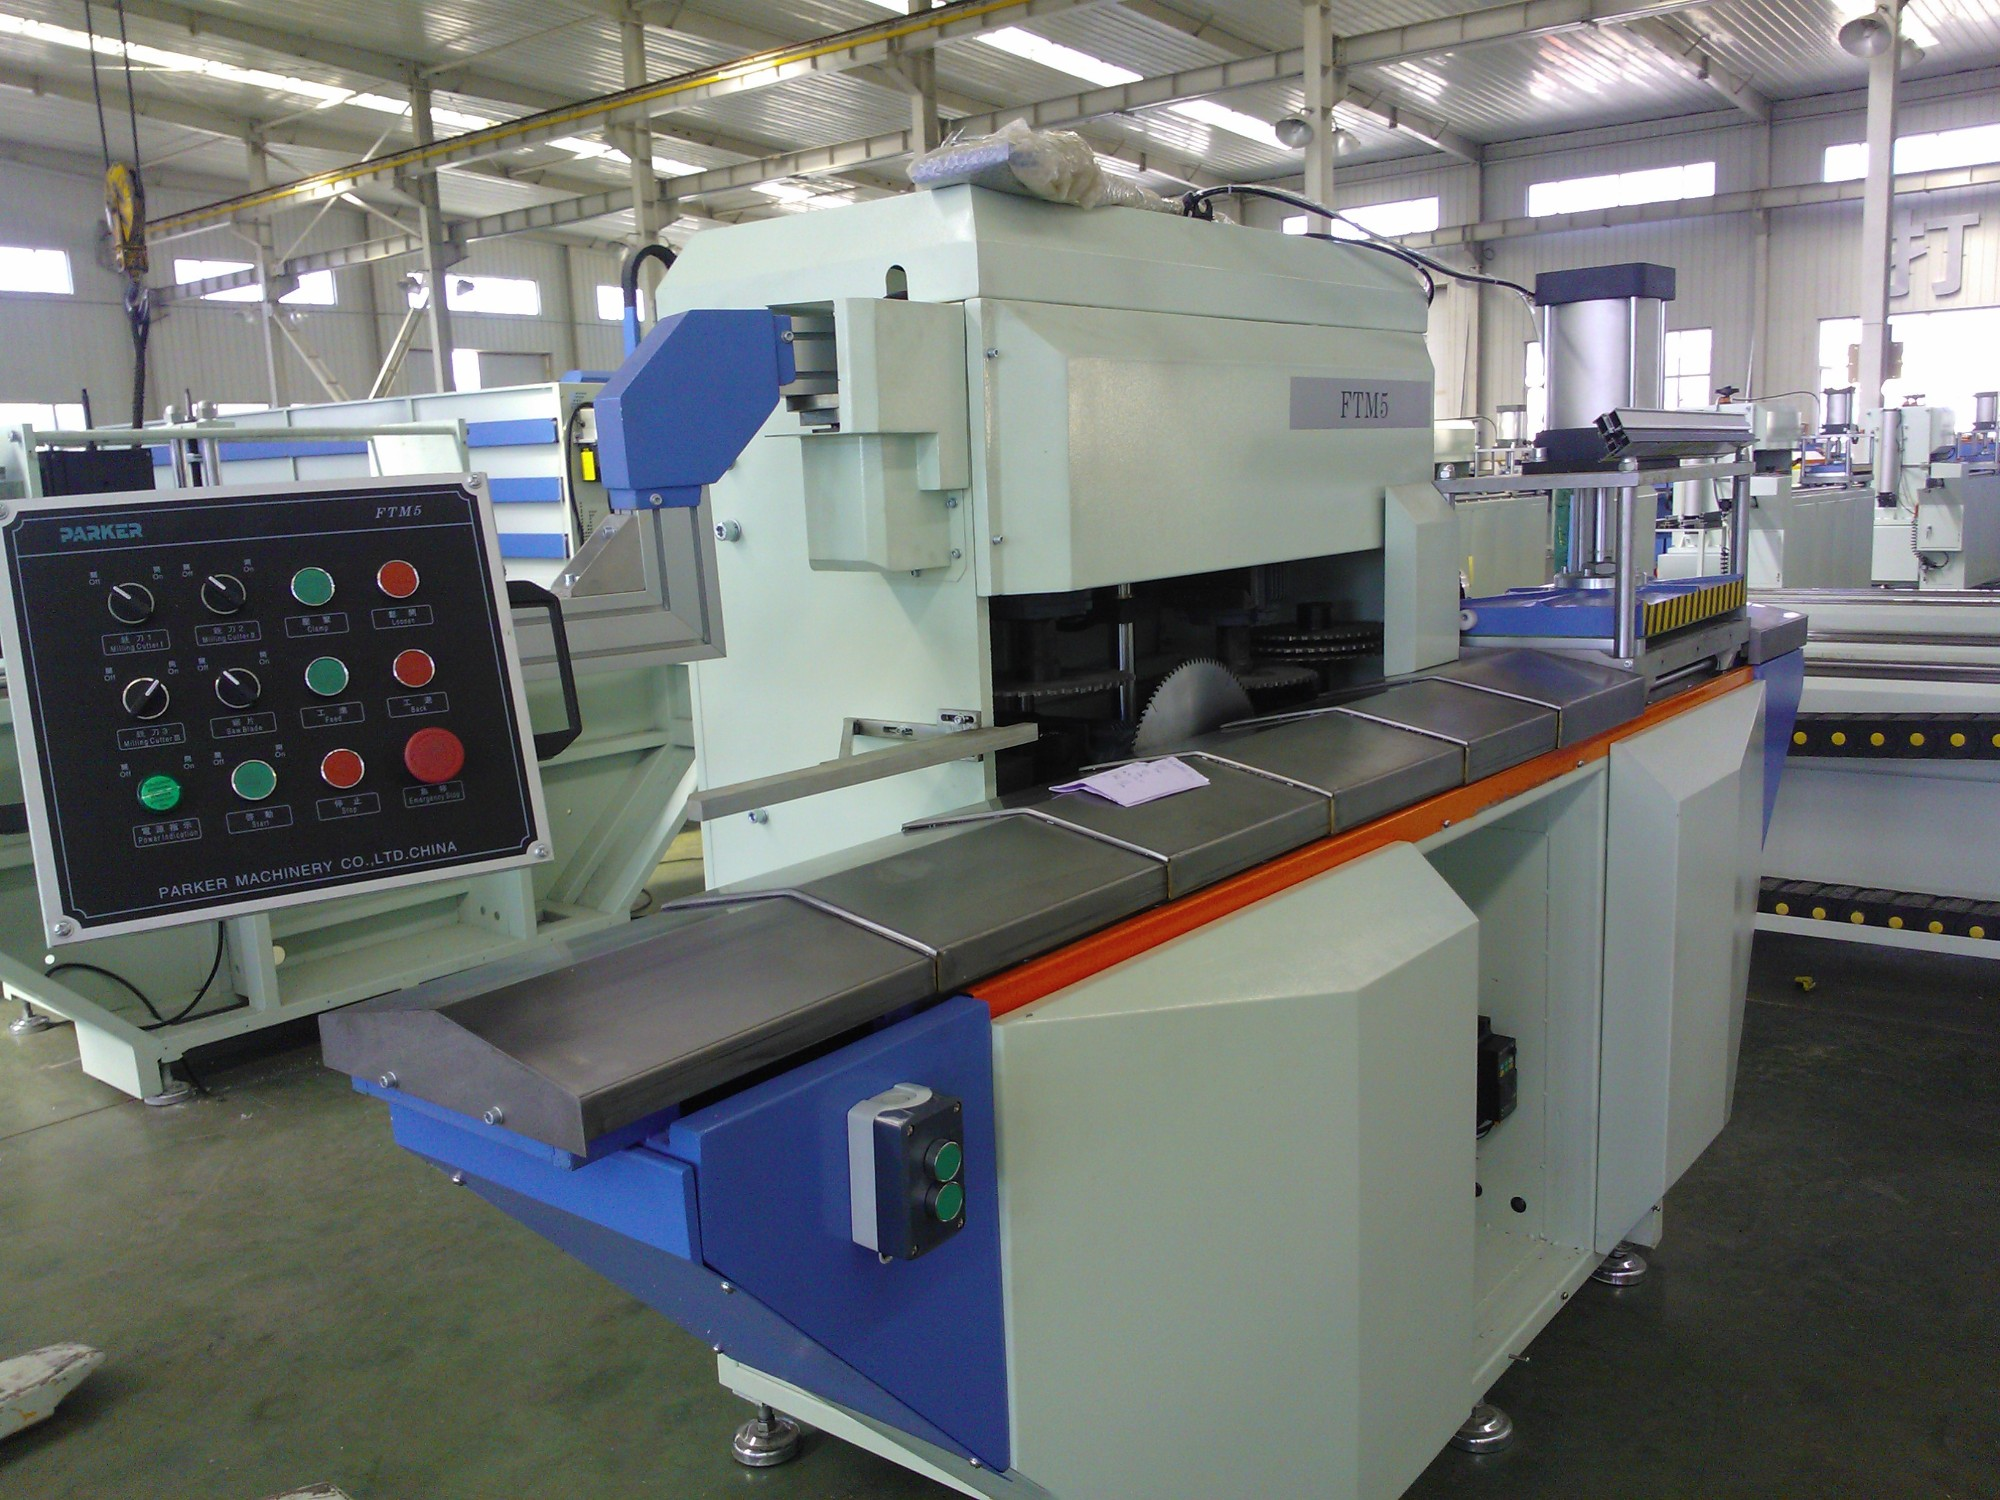 High quality 4 Axis Aluminium End Milling Machine Quotes,China 4 Axis Aluminium End Milling Machine Factory,4 Axis Aluminium End Milling Machine Purchasing